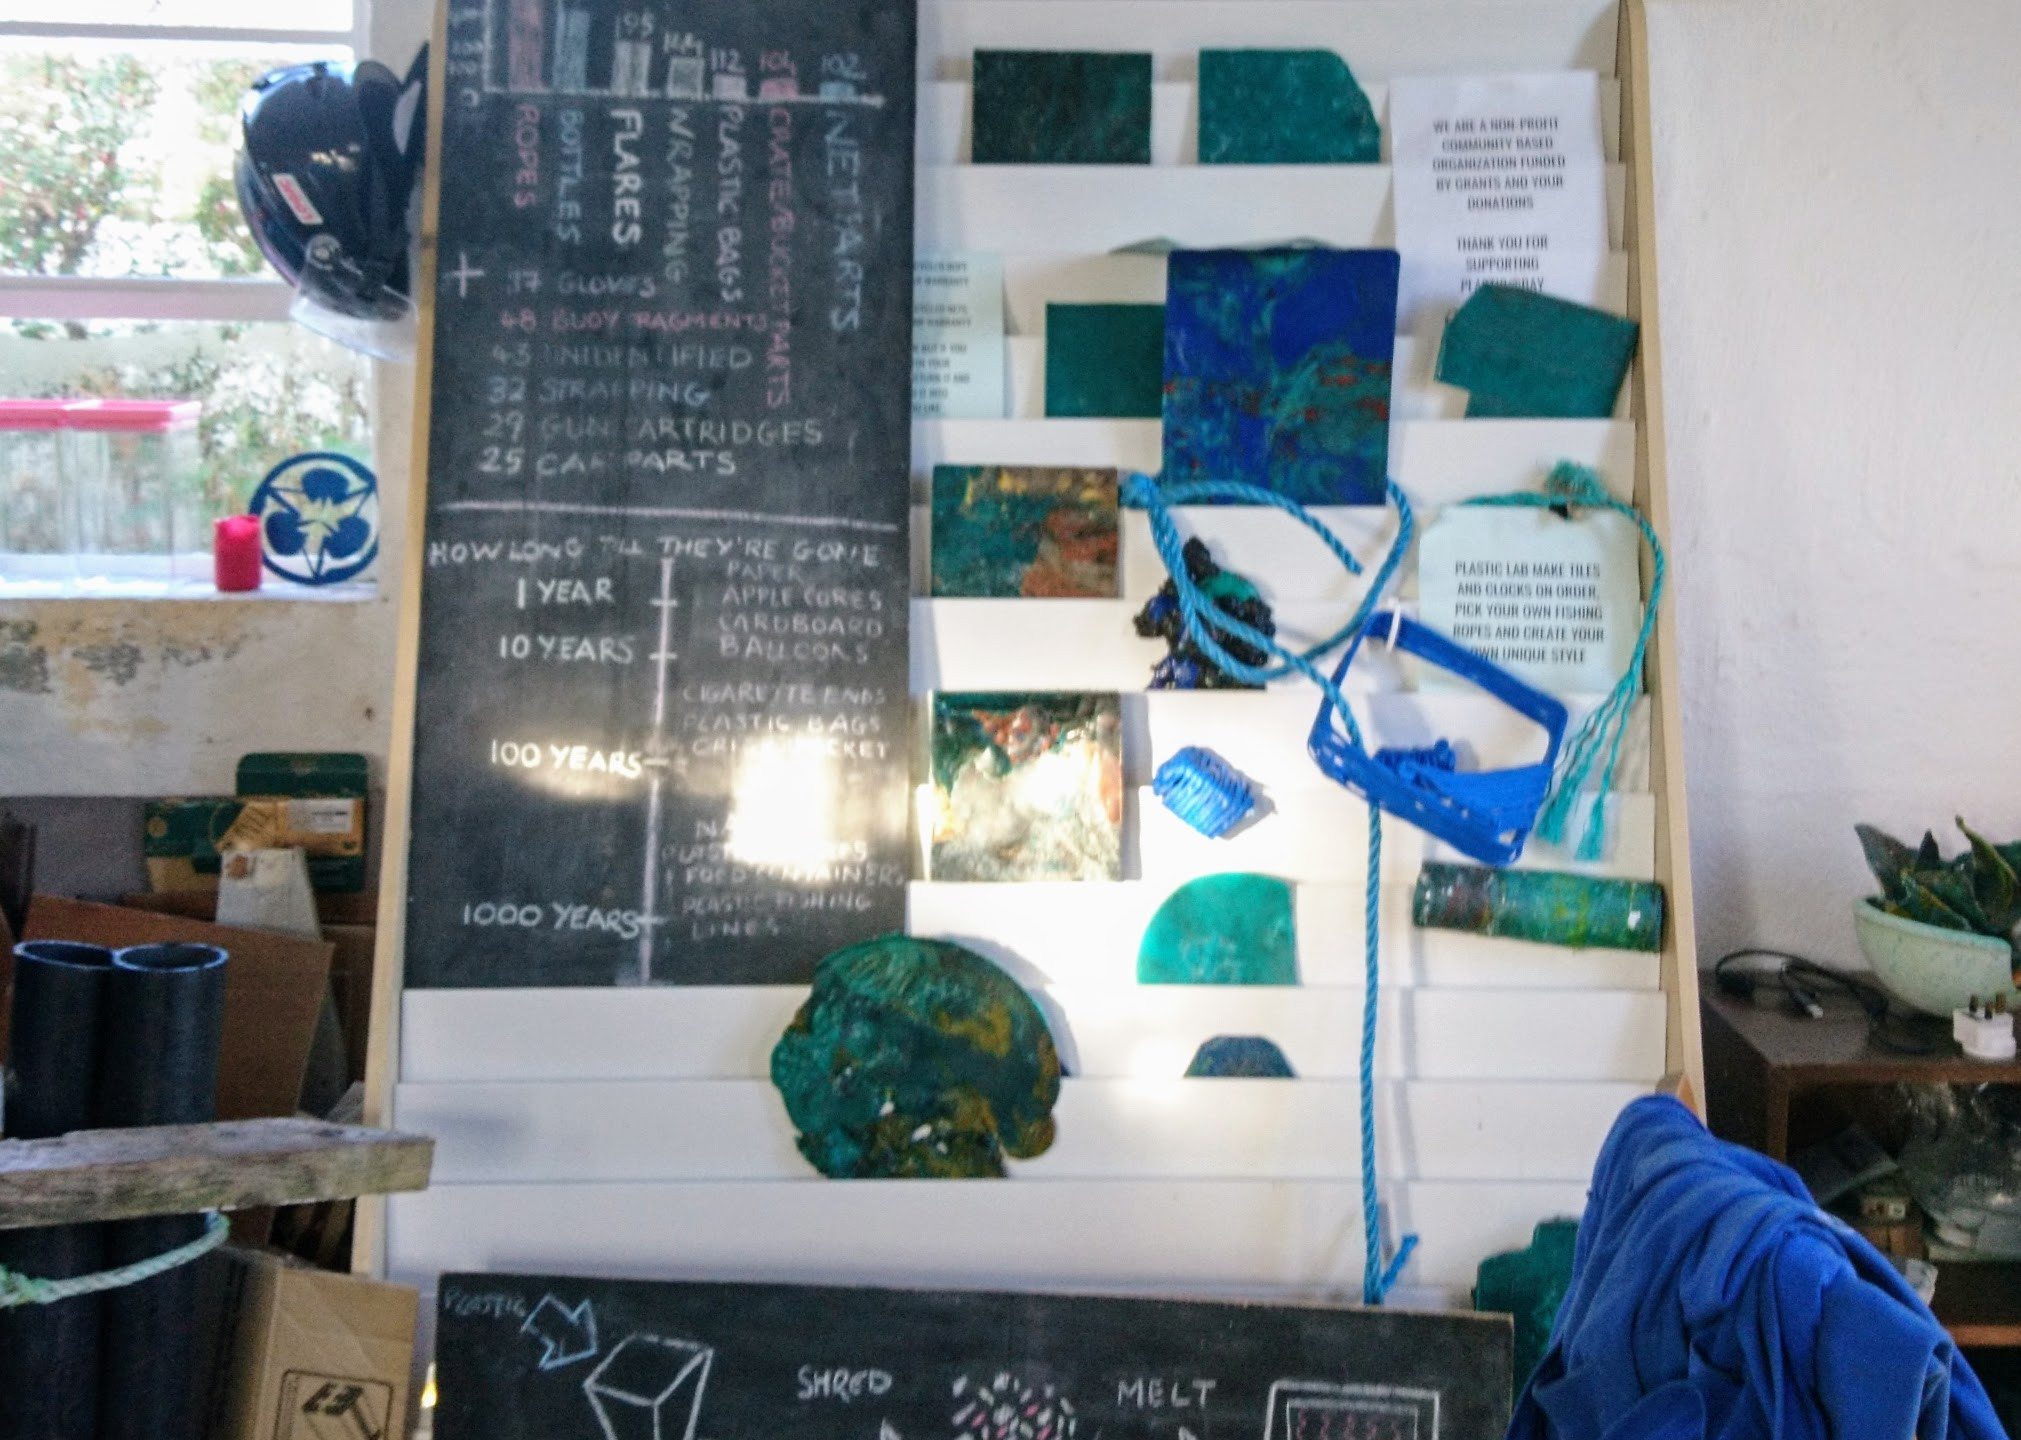 From beach to remediation, volumes of plastic and different categories